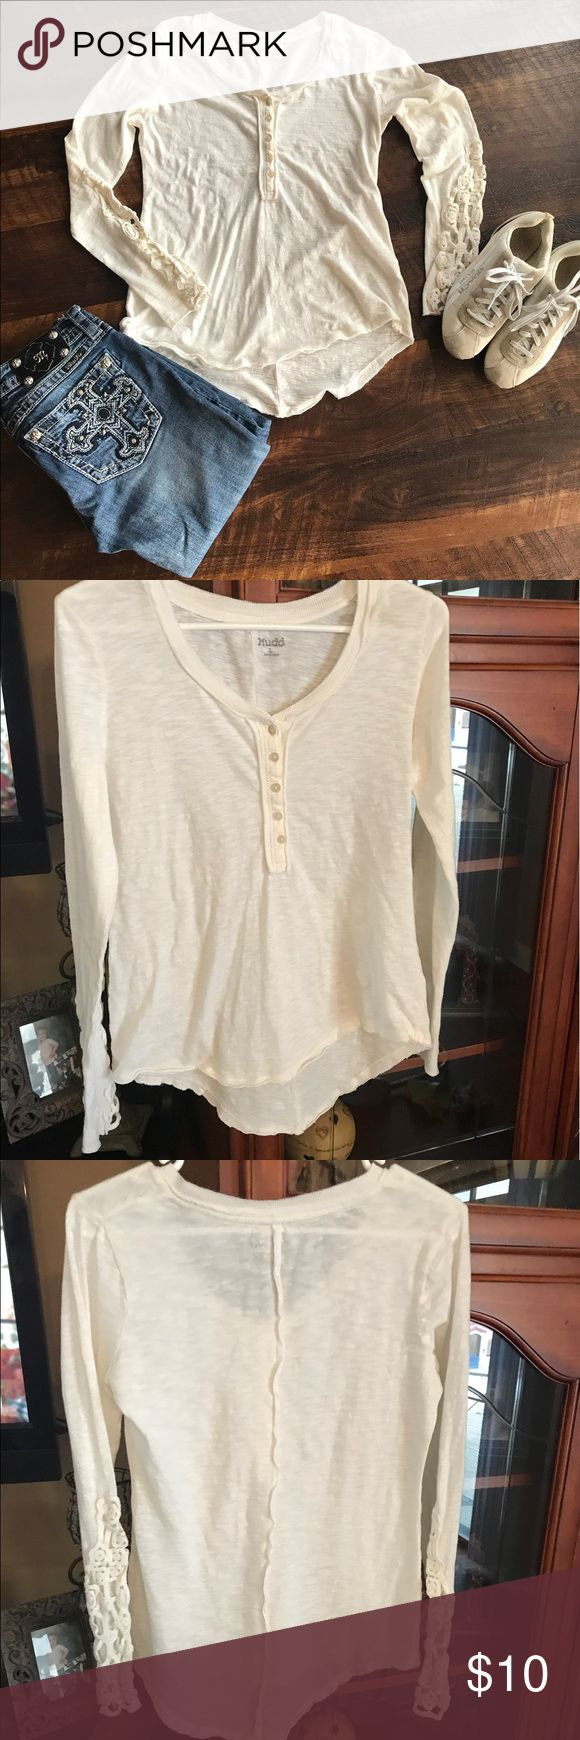 🌺Cream long sleeve top Mudd Cream color long sleeve top with cute cut out sleeves. Size Junior Large Mudd Tops Tees - Long Sleeve